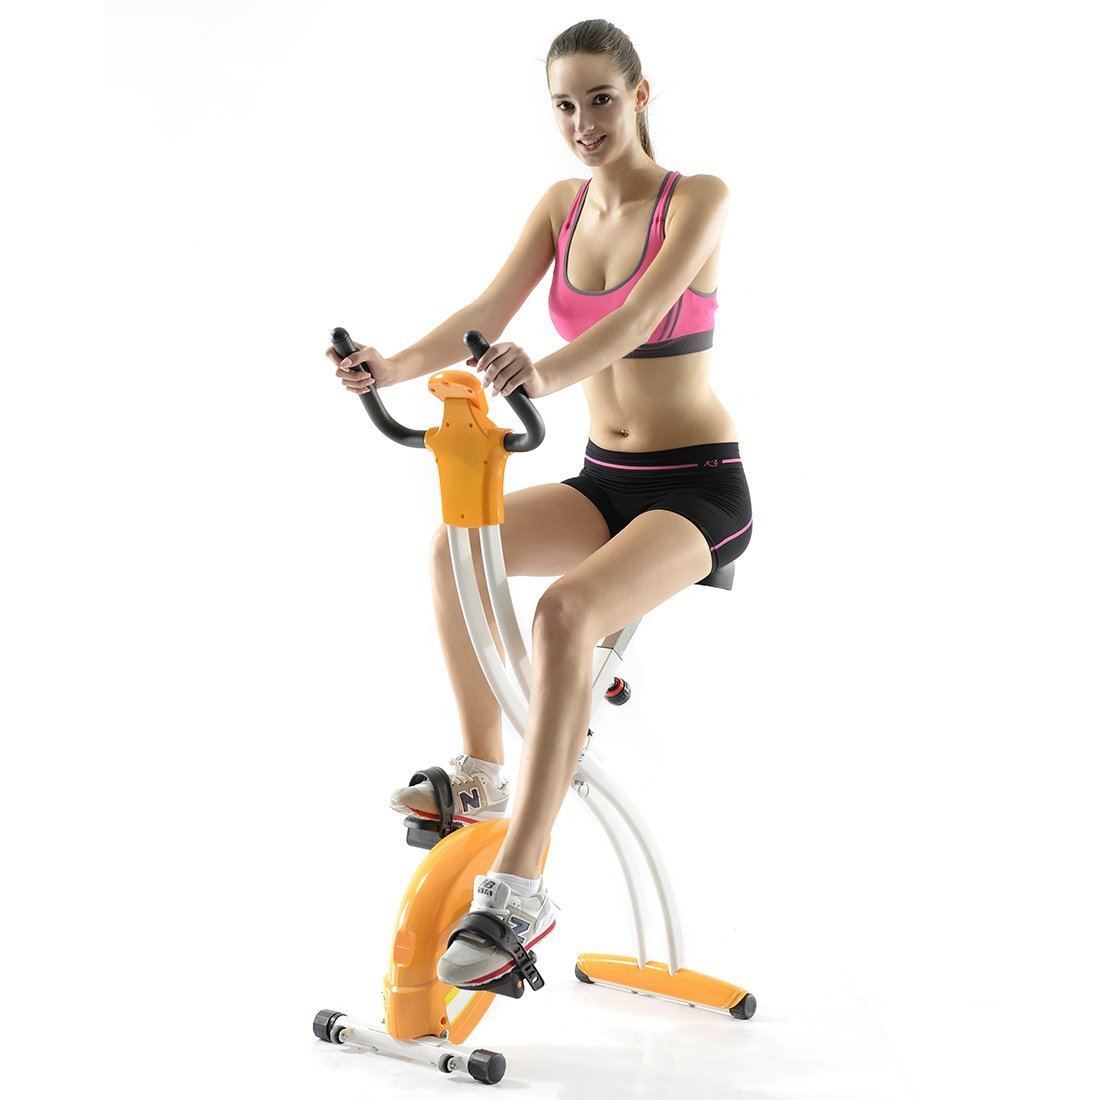 Fitleader Upright Folding Gym Cycle